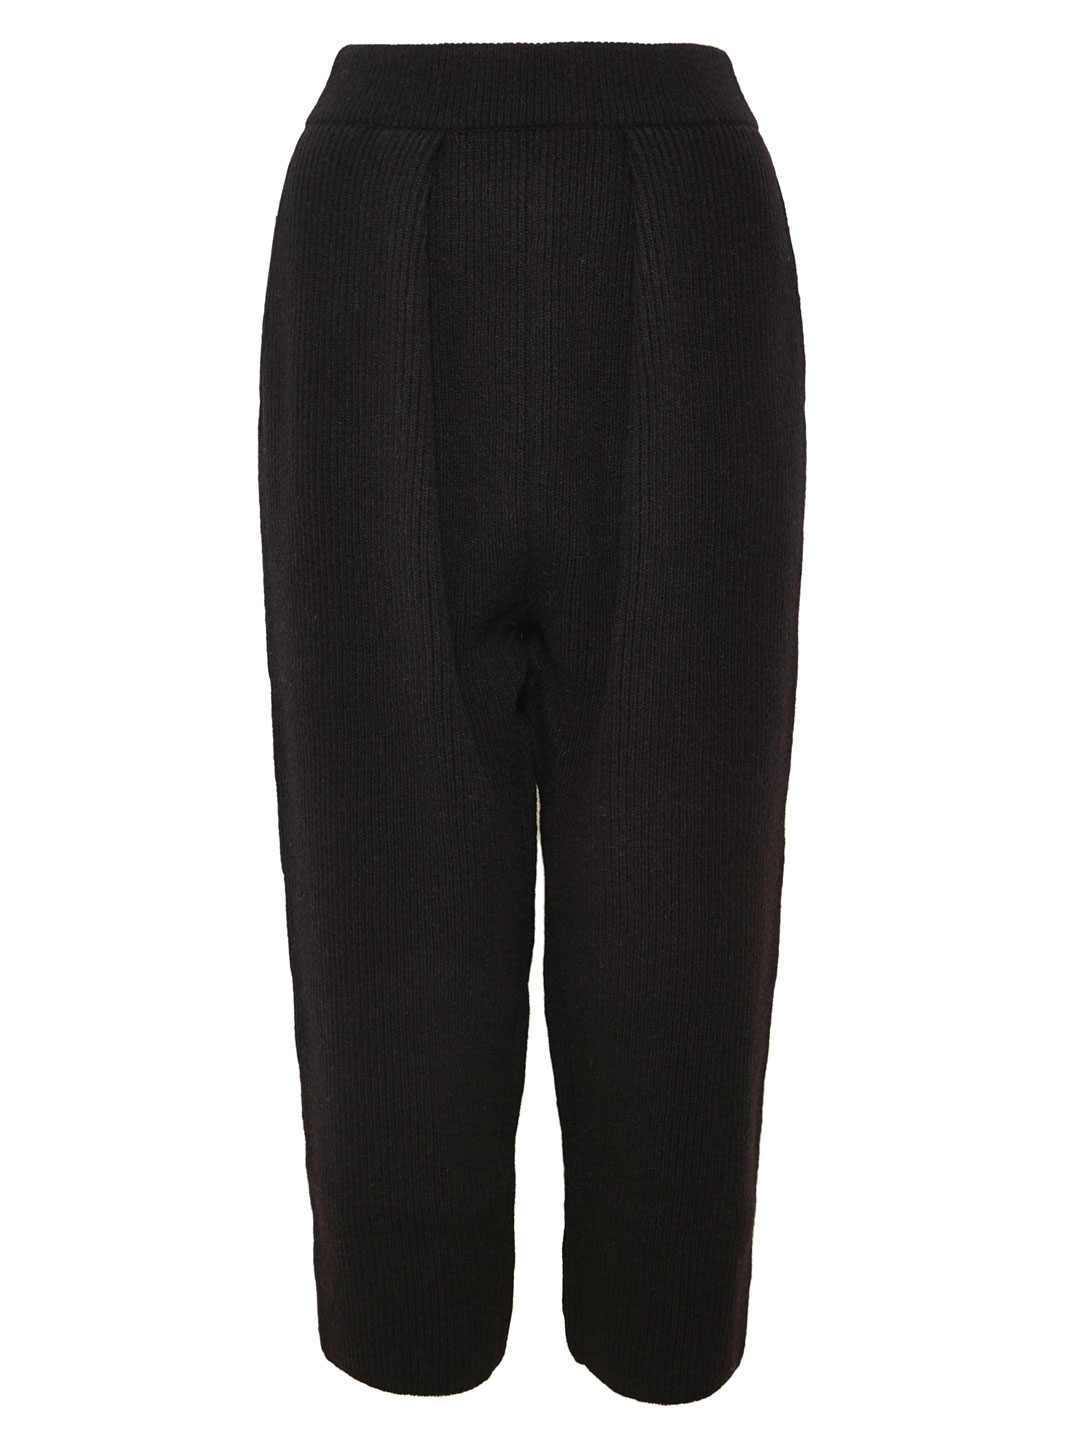 Outlet Best Sale Sonia Rykiel ribbed knit trousers Cost Buy Cheap Reliable Sale Fast Delivery Purchase CNM9B8